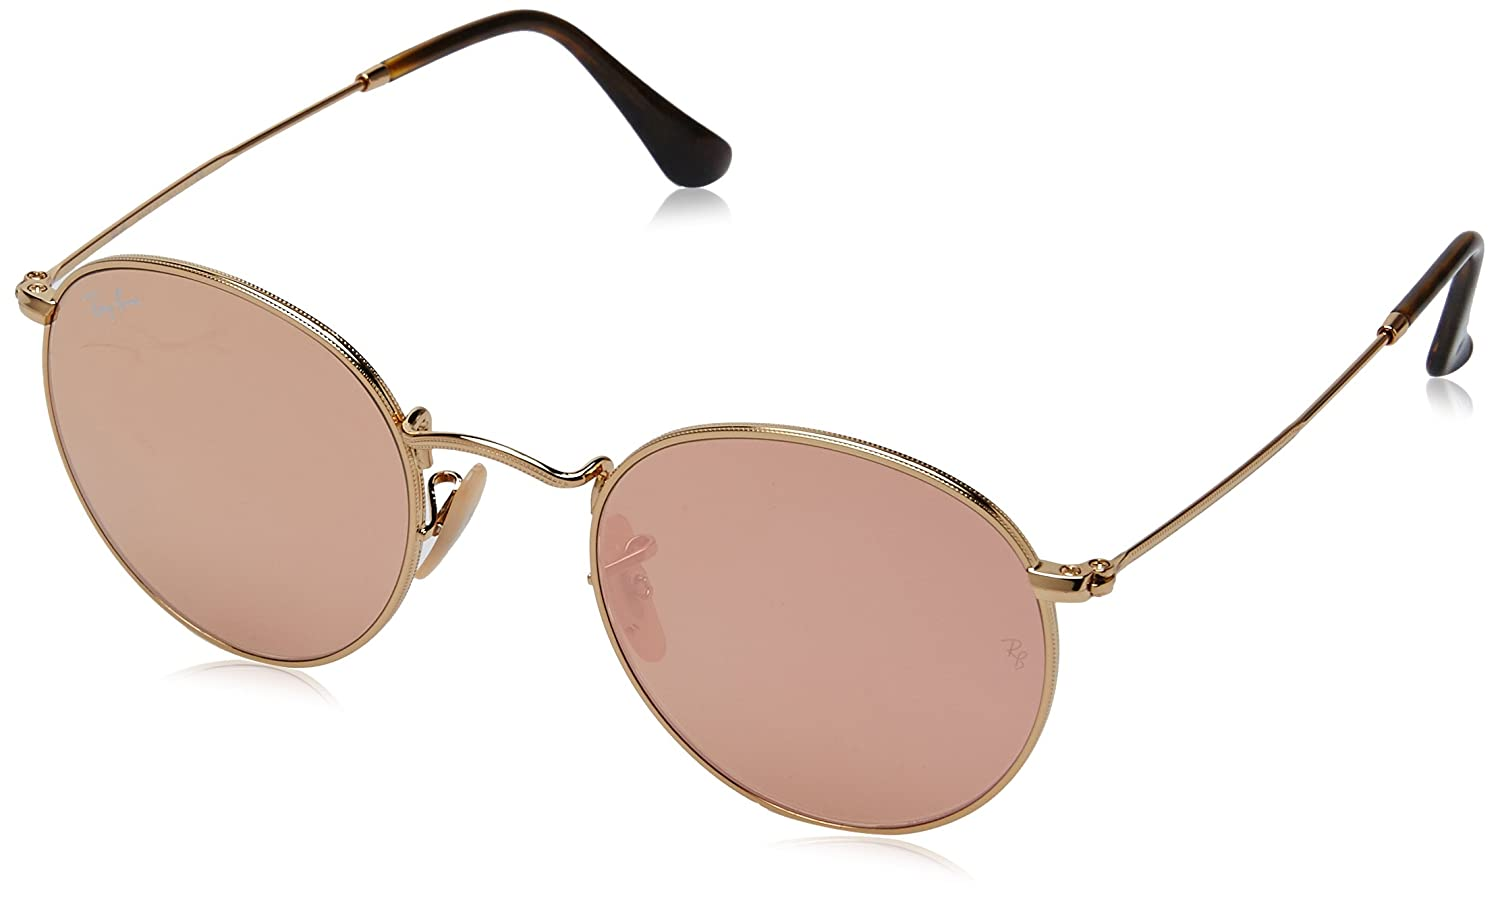 bccded2e77 Amazon.com  Ray-Ban Round Metal 0RB3447N Round Sunglasses  Clothing